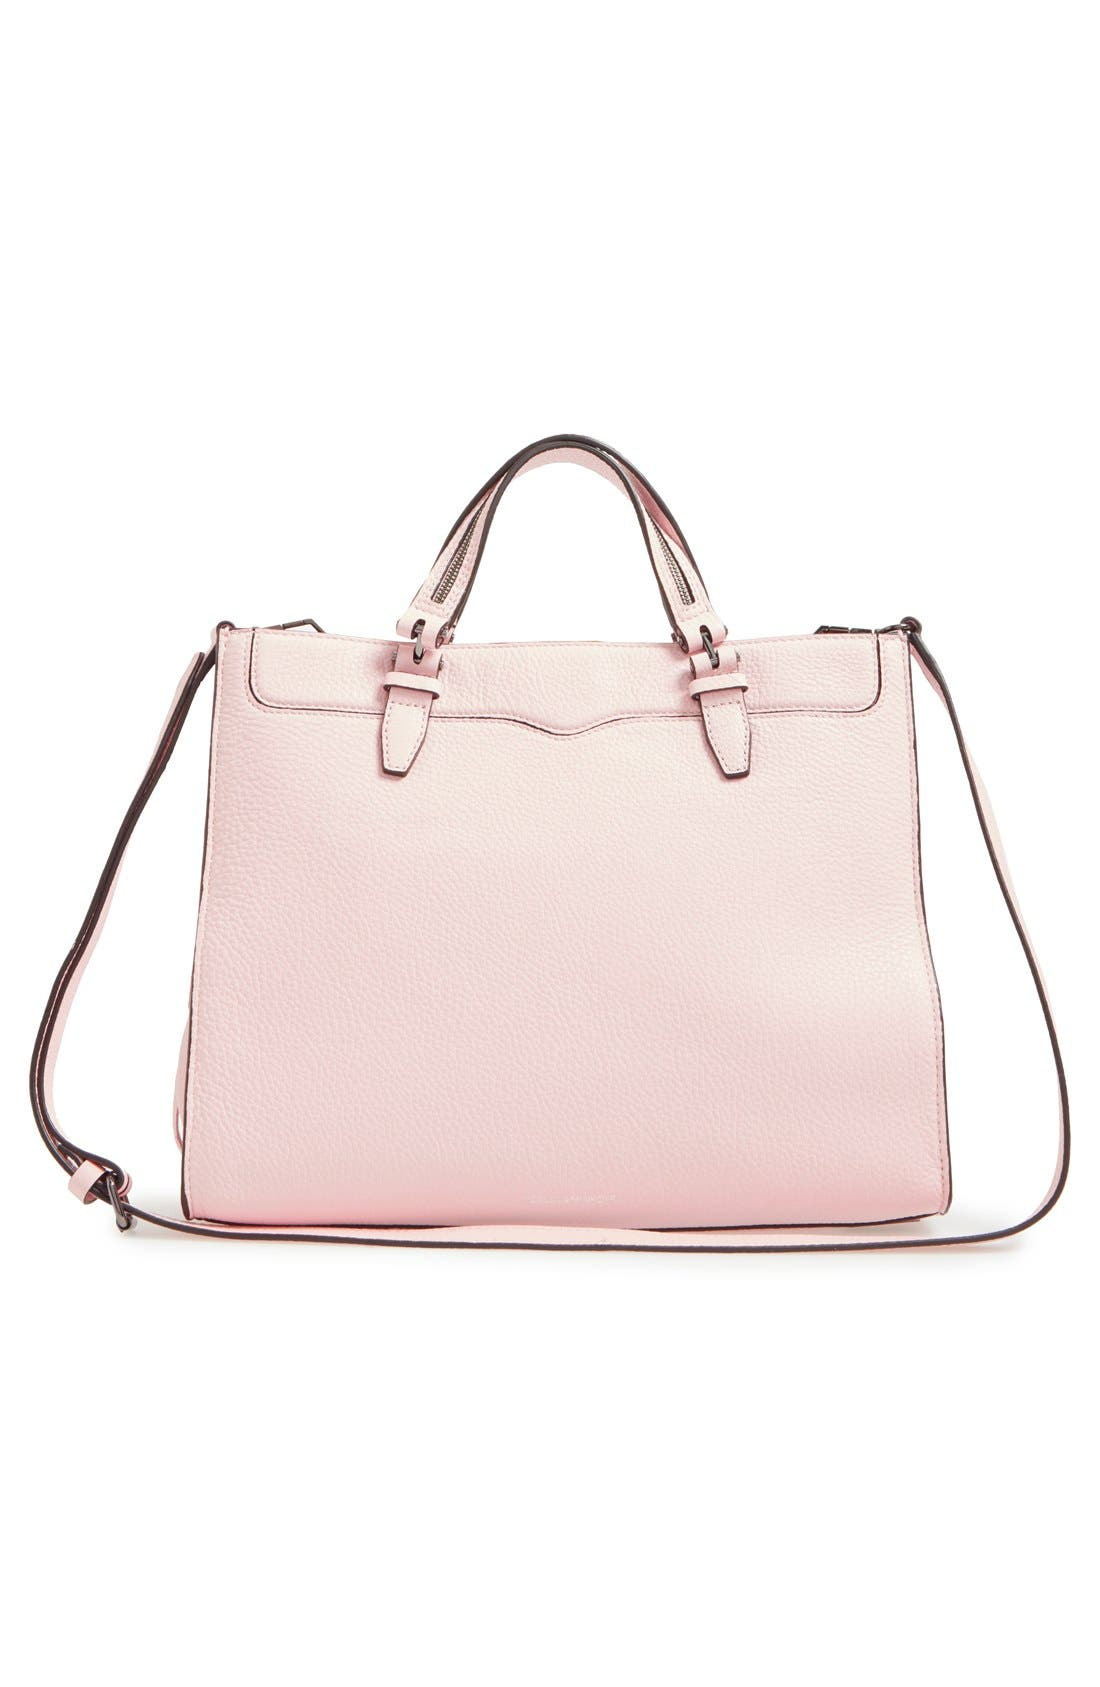 REBECCA MINKOFF,                             'Blair' Tote,                             Alternate thumbnail 3, color,                             650